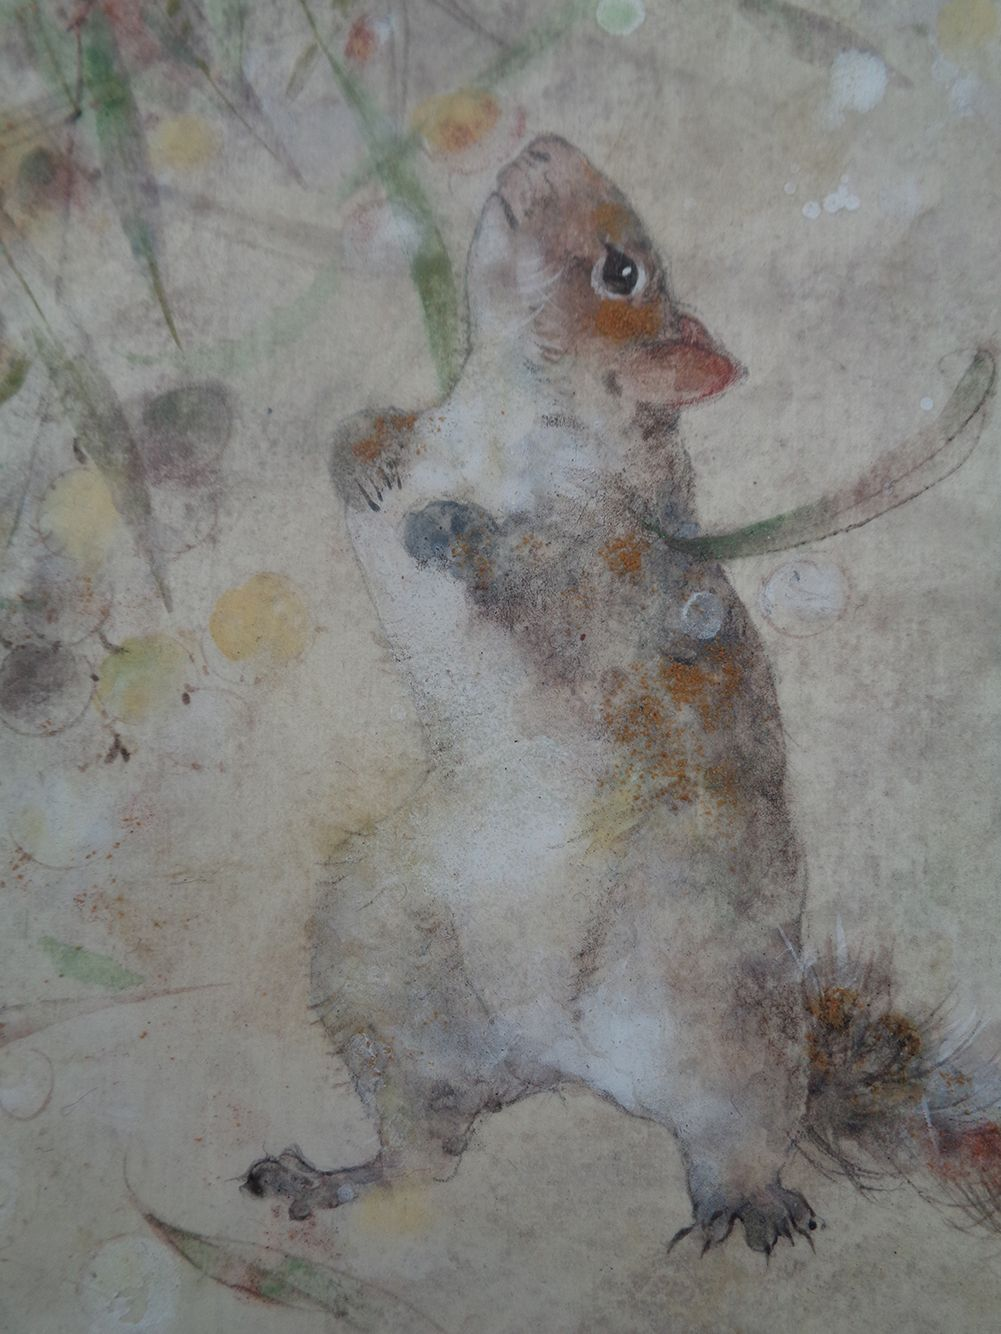 Research III,Chen Yiching,Contemporary painting, detail 2